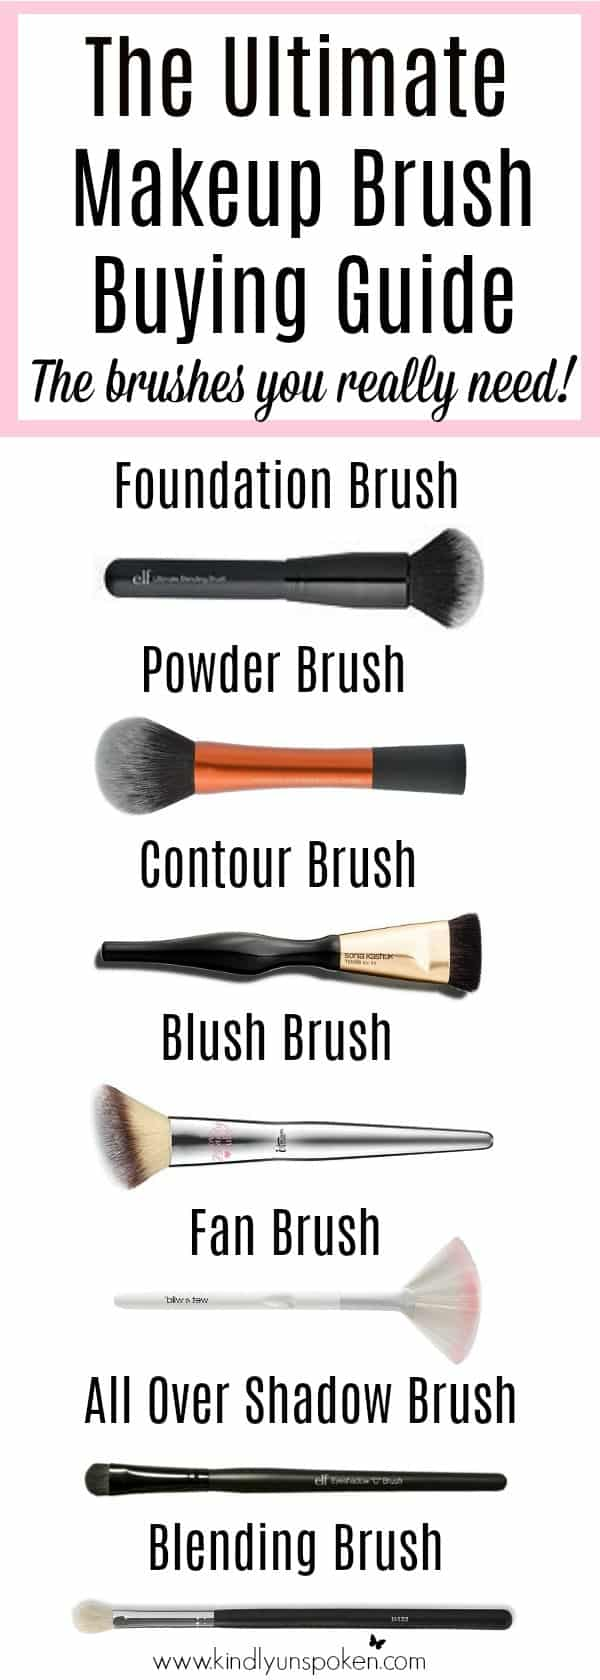 The Ultimate Makeup Brush Buying Guide- The Brushes You Really Need In Your Makeup Collection And How to Use Them!